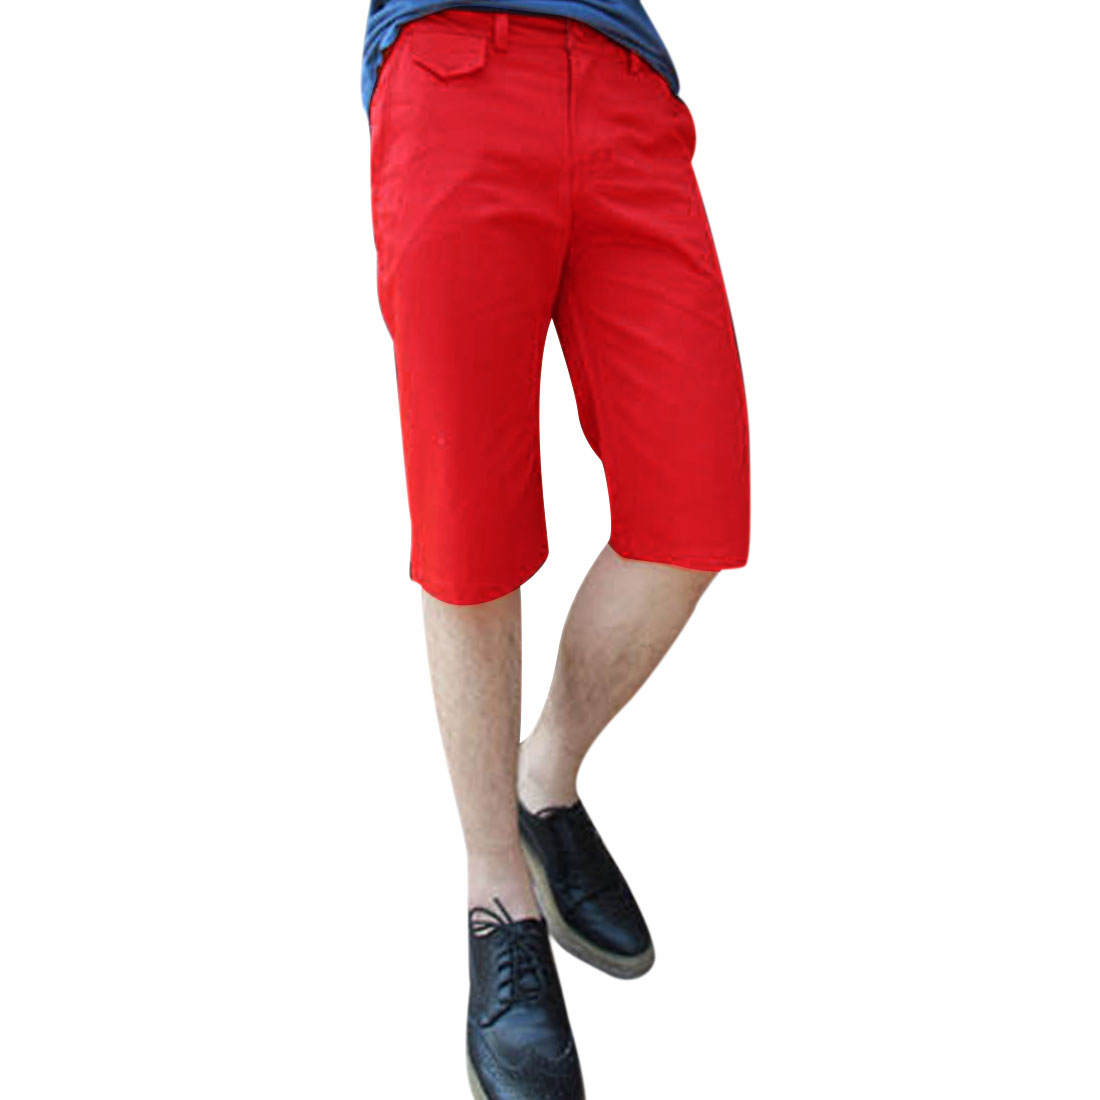 Men Zipper Fly Waistband Loop Hip Pockets Chic Shorts Red W36